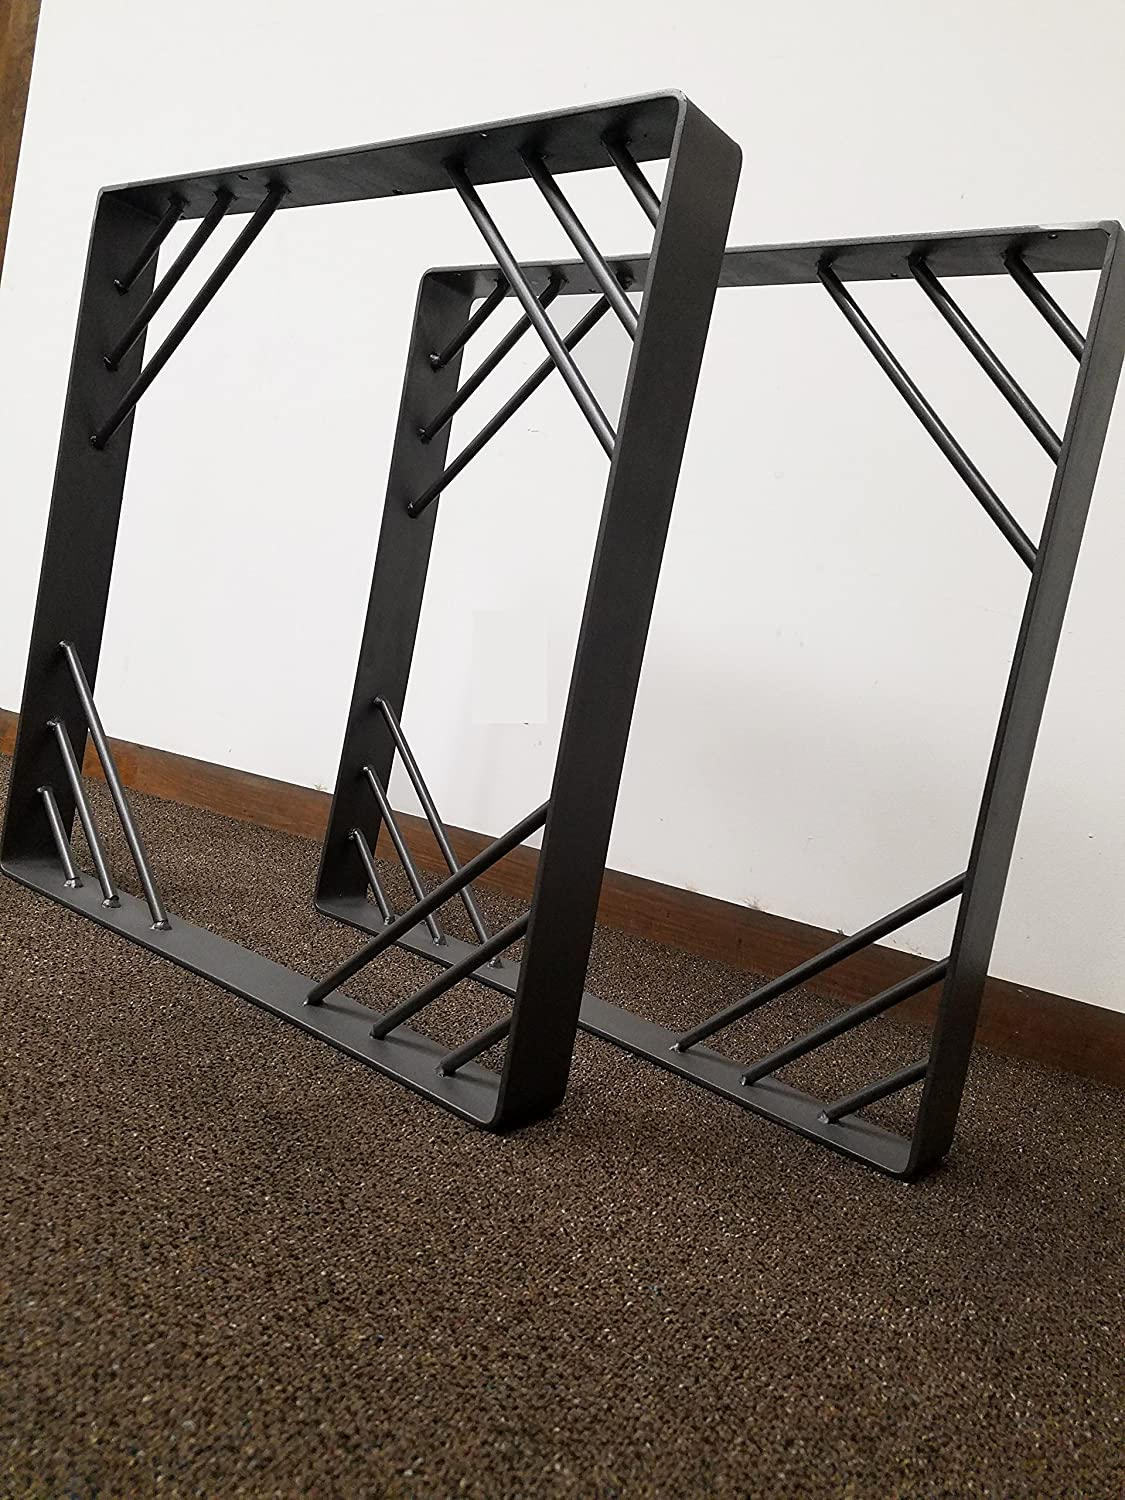 Metal Diagonals Style Steel Table Legs - Any Size and Color!